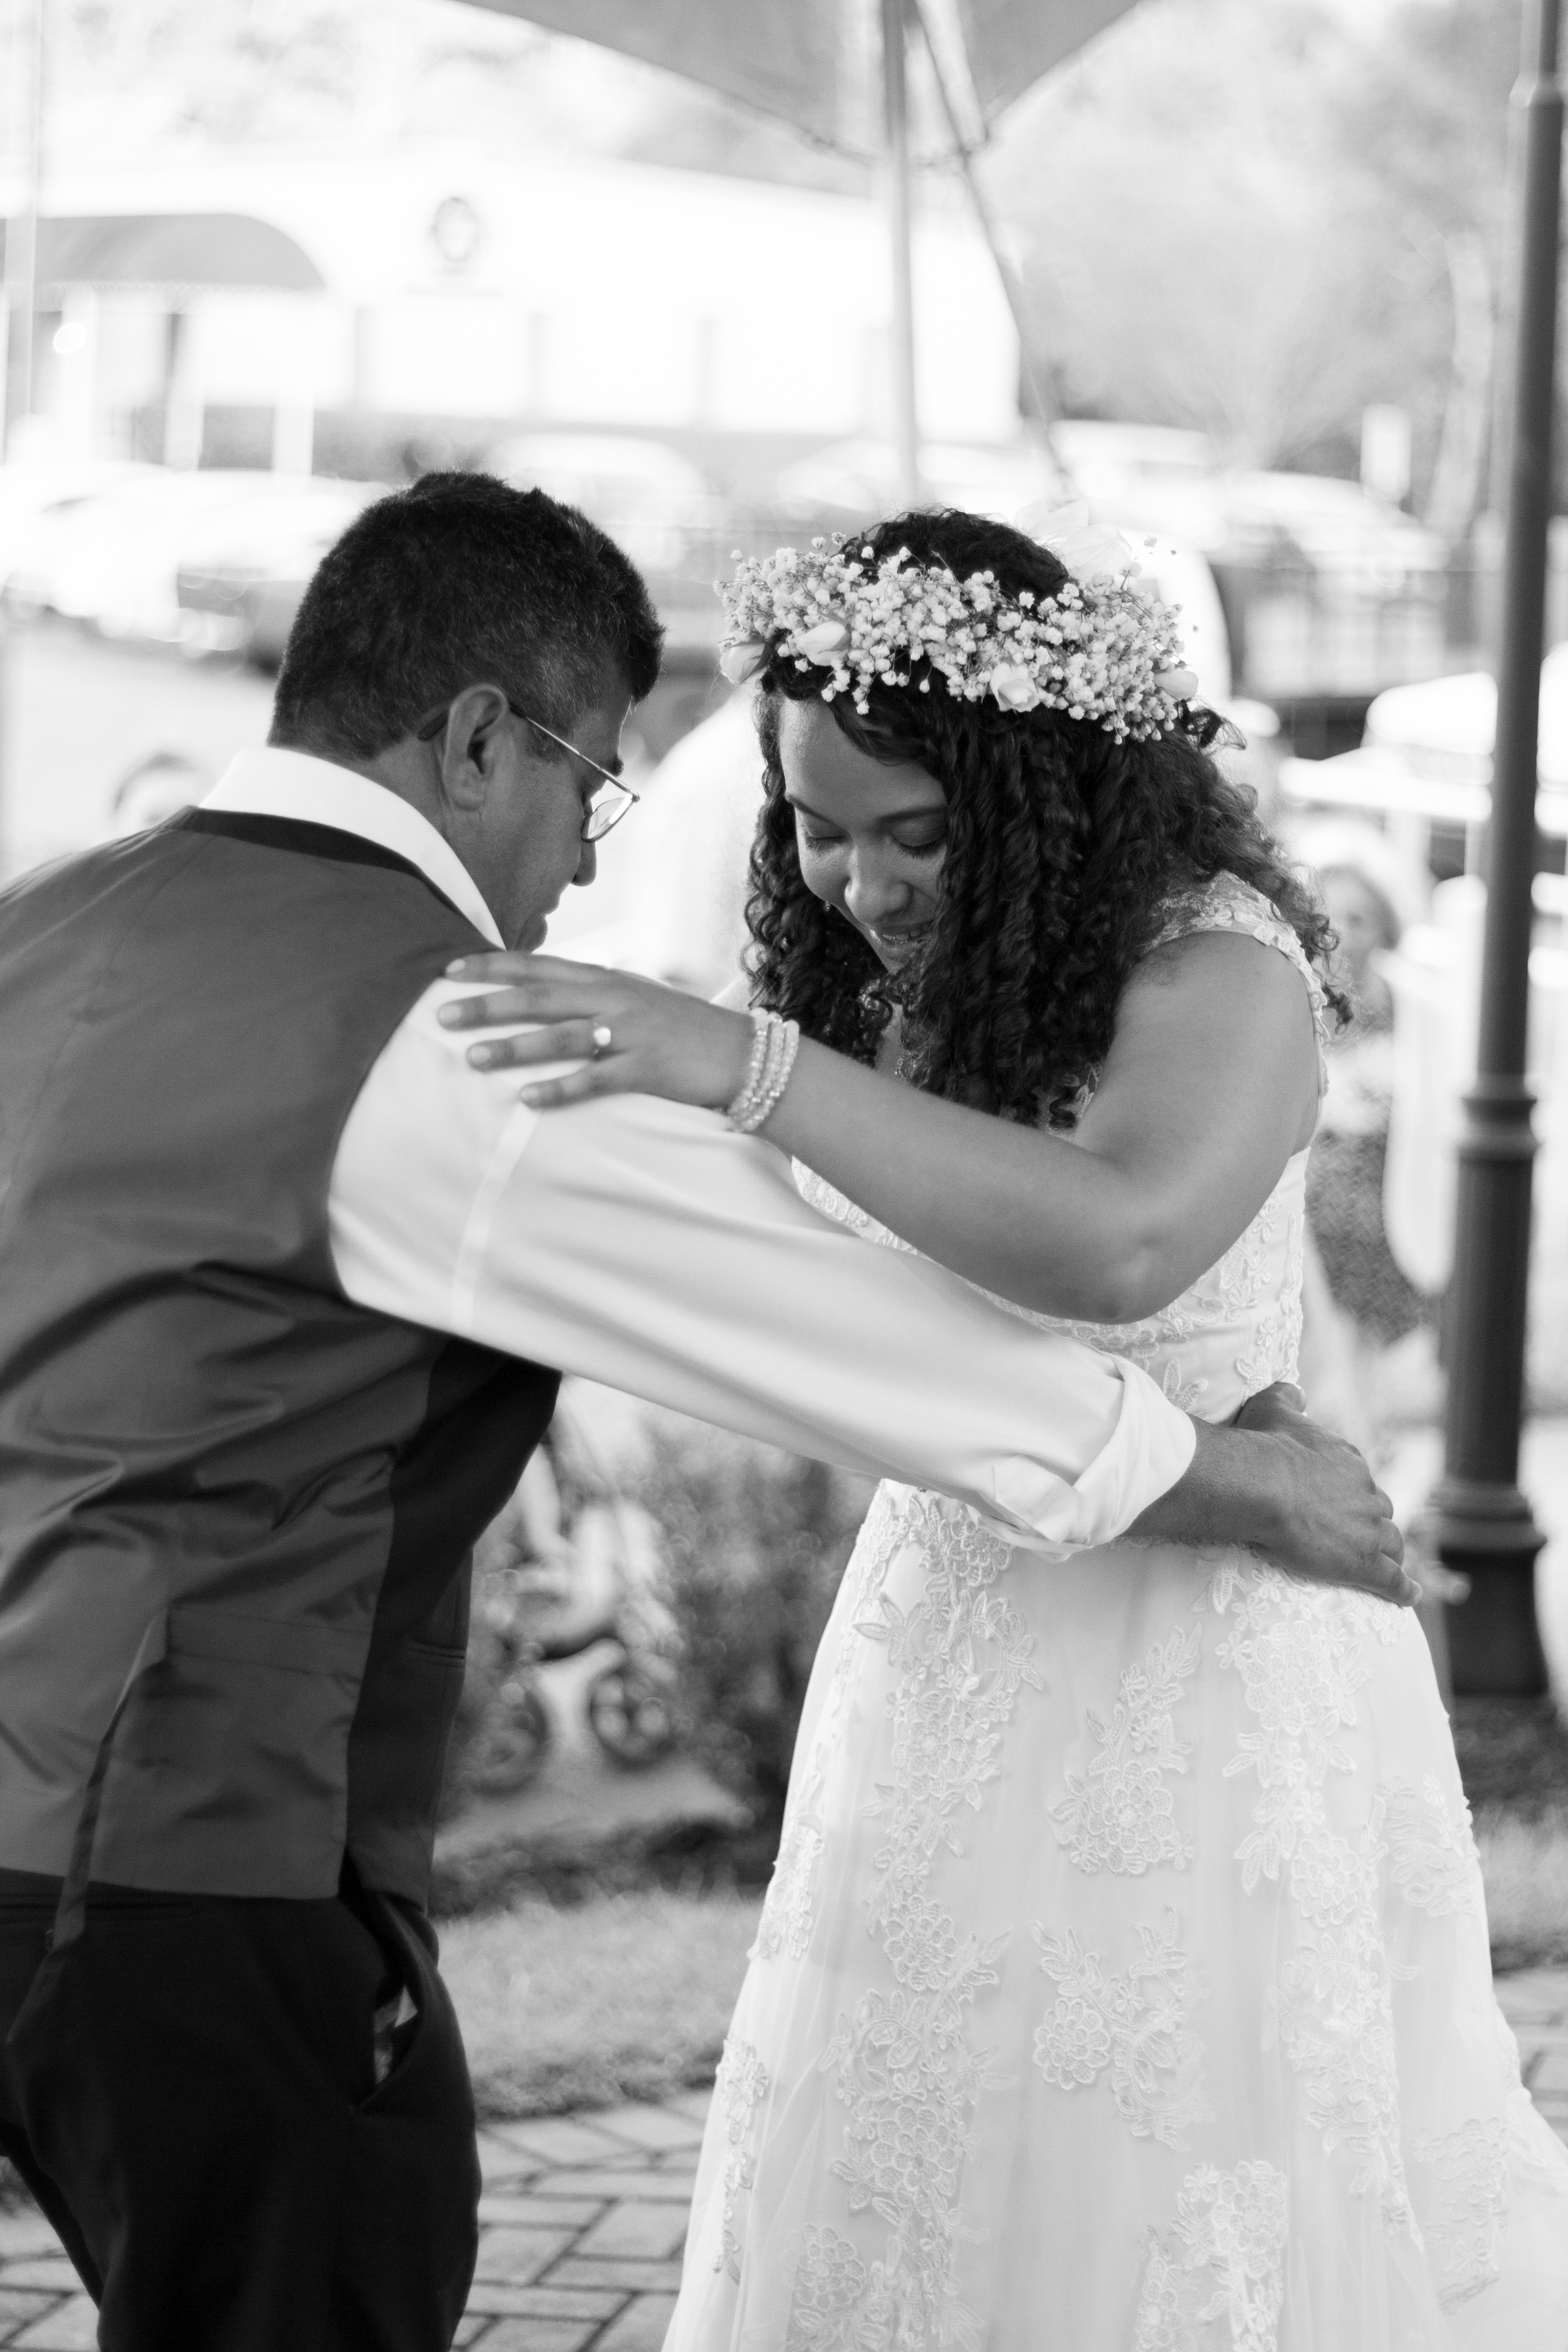 Cathy and Chris Wedding Photos - Black and White - by Brittany Castillo Meadow Portraits (5 of 21).jpg